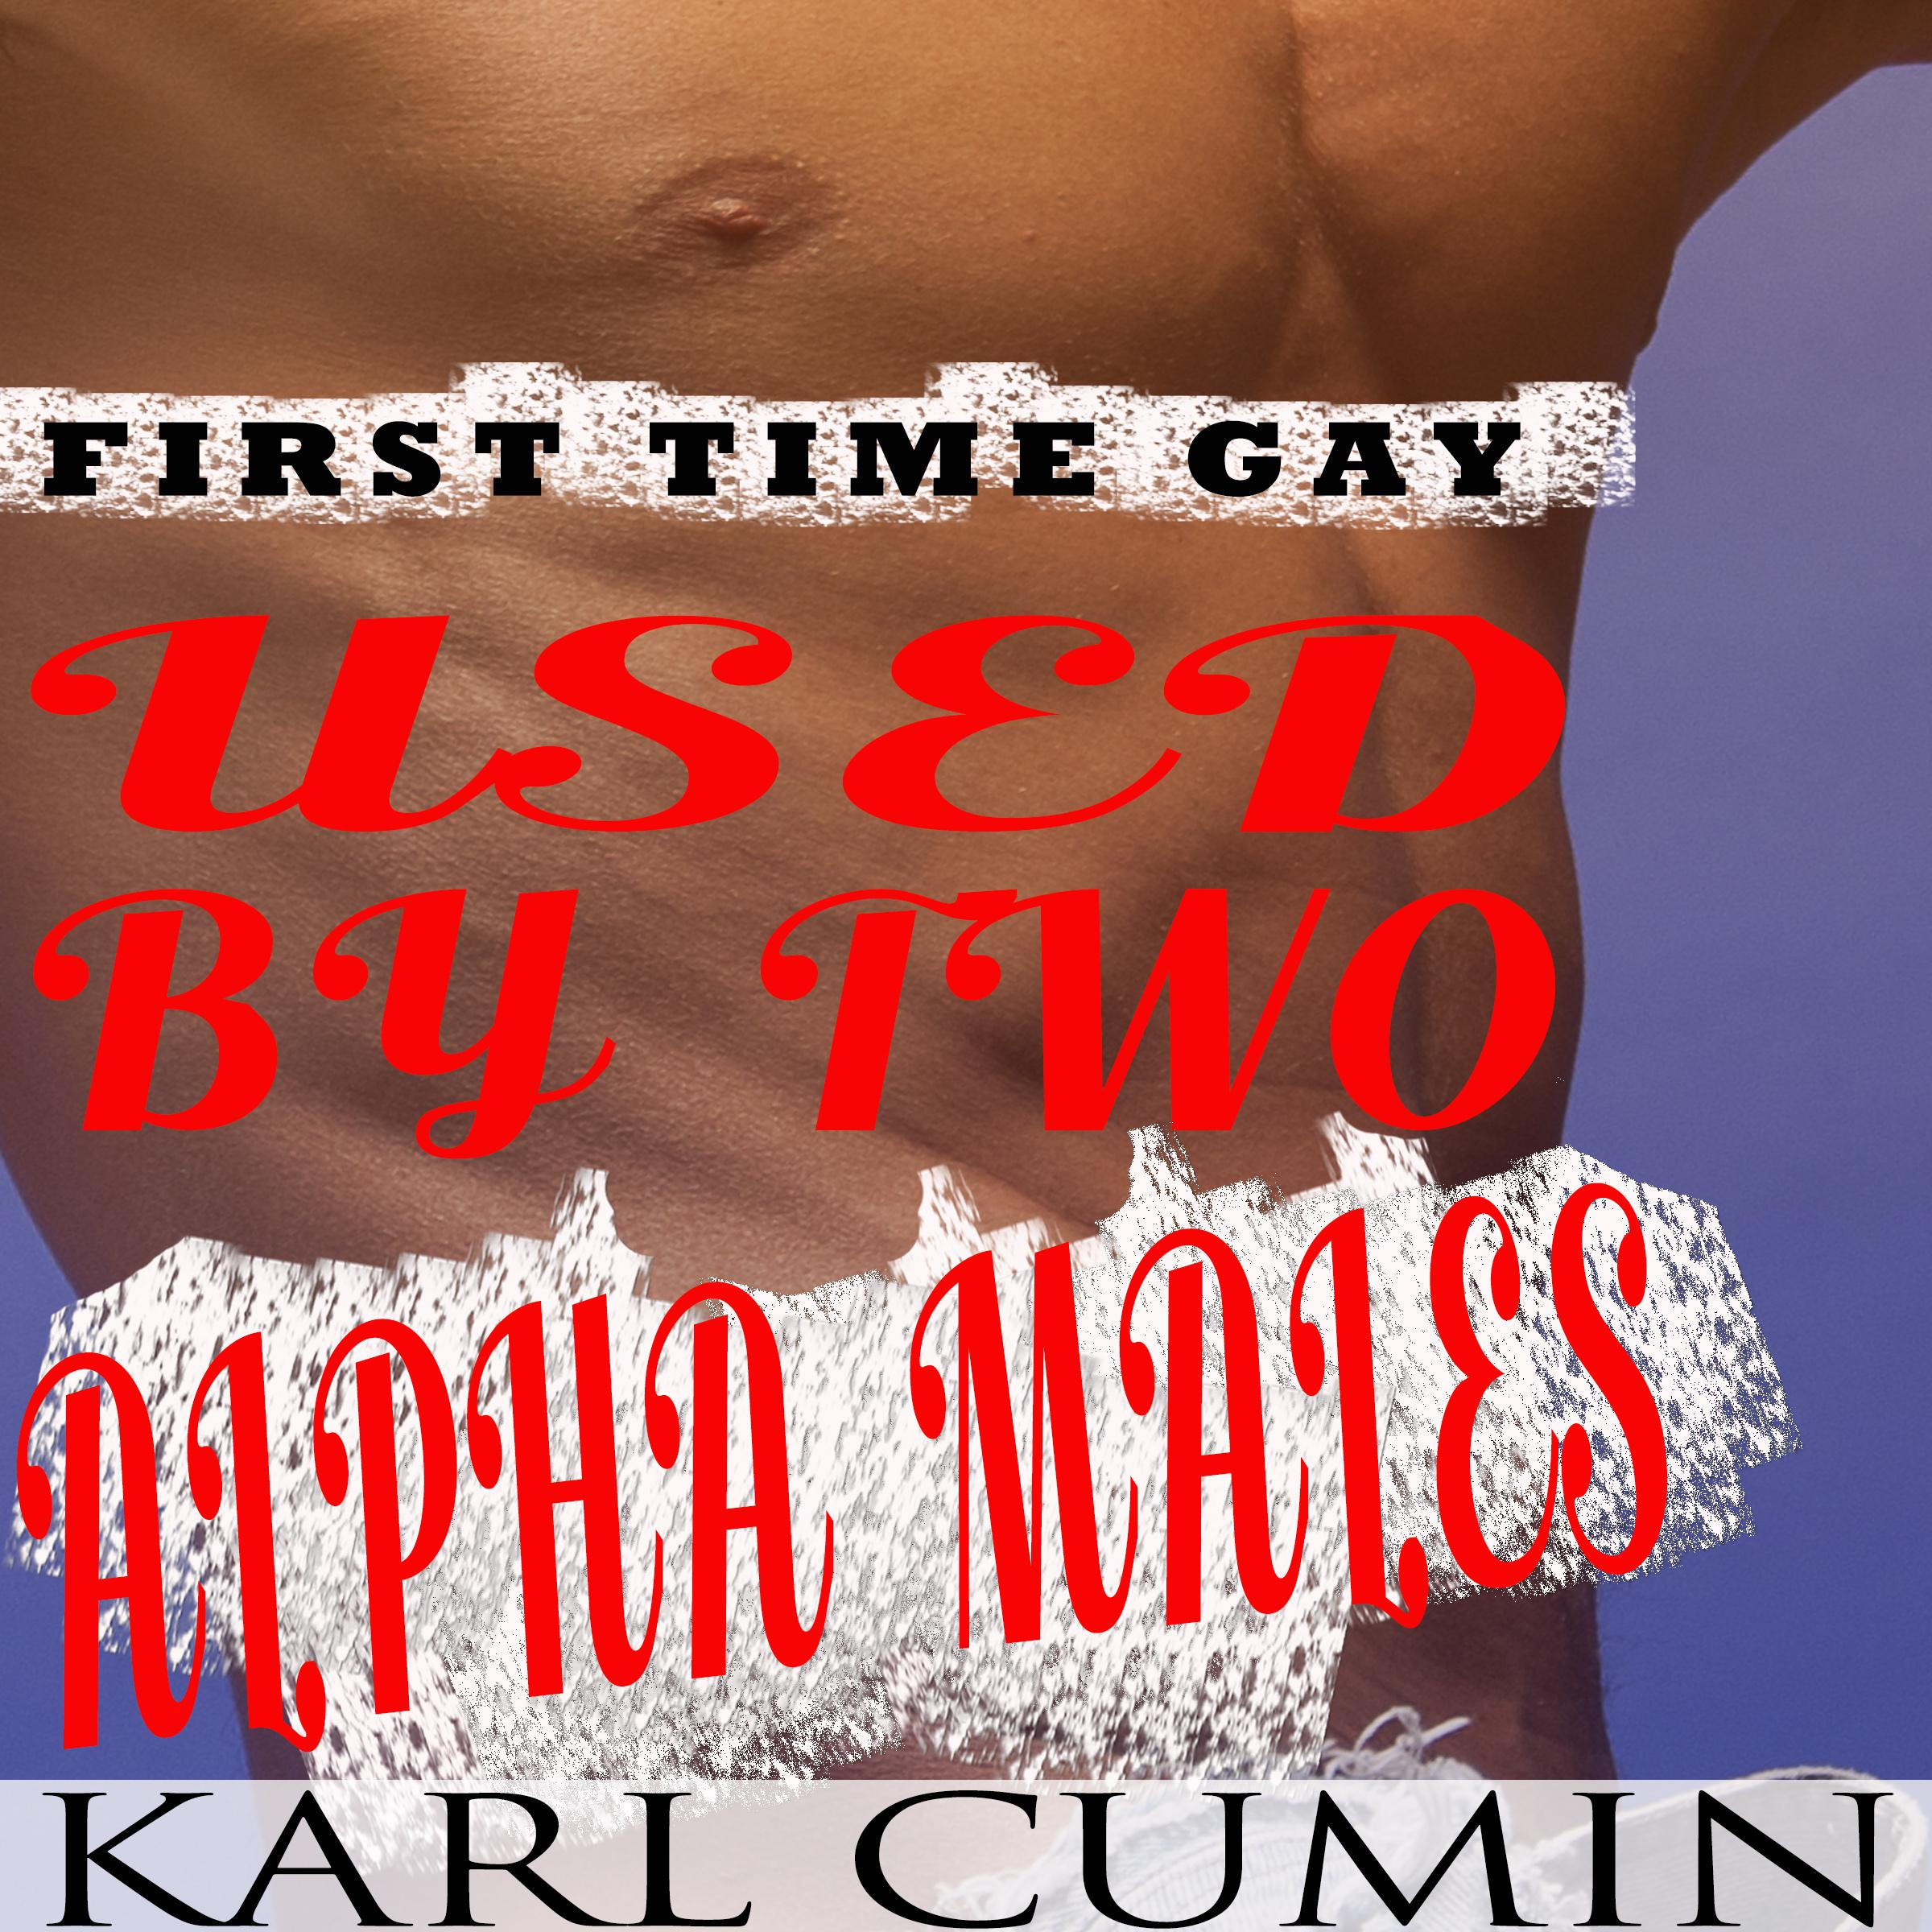 First time gay threesome